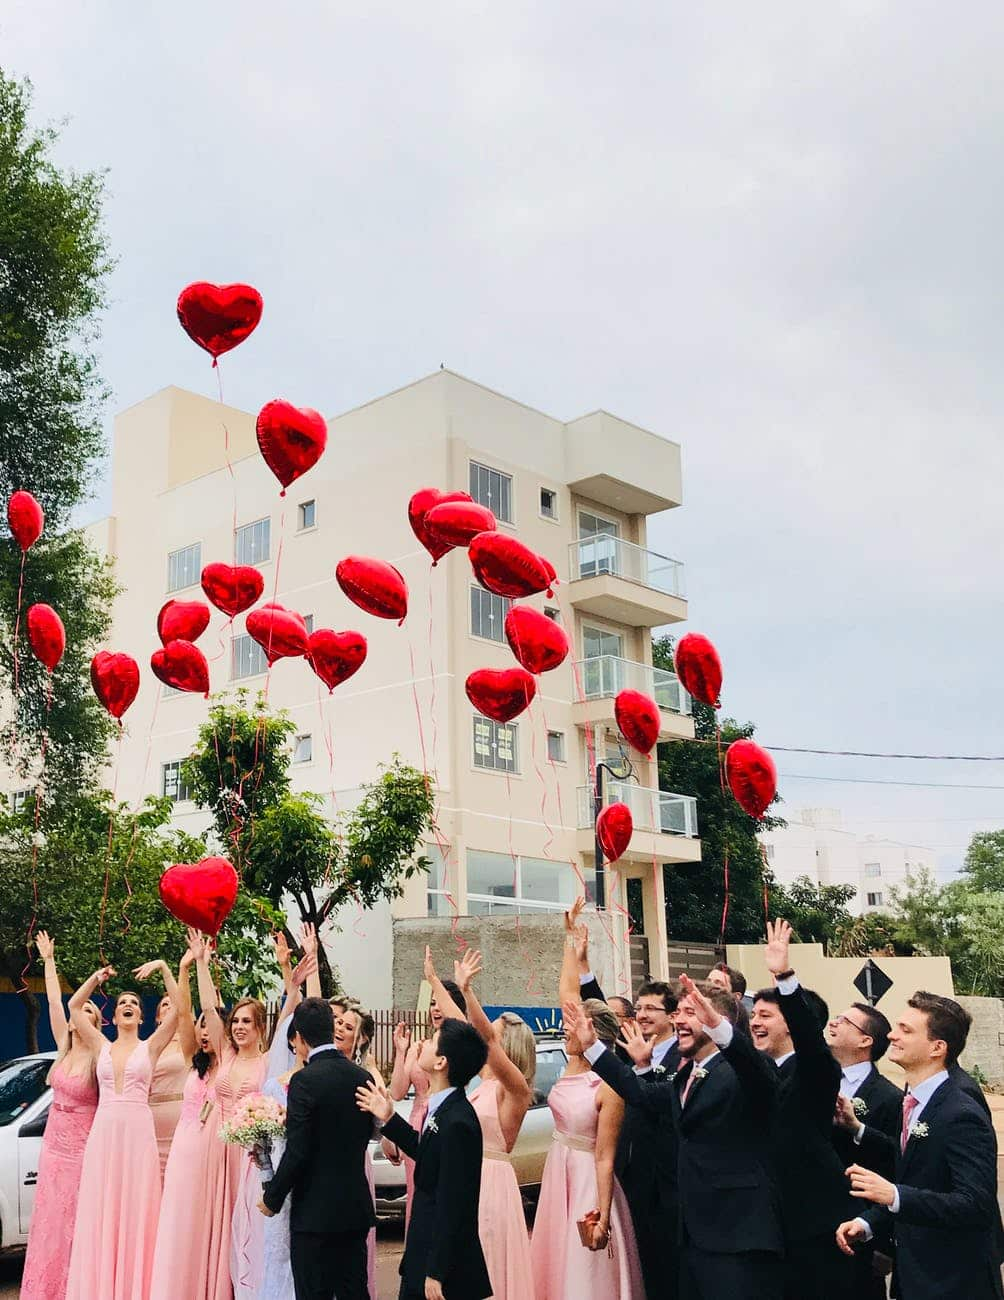 women wearing pink dresses and men wearing black suit jacket and pants raising hands with red heart balloons